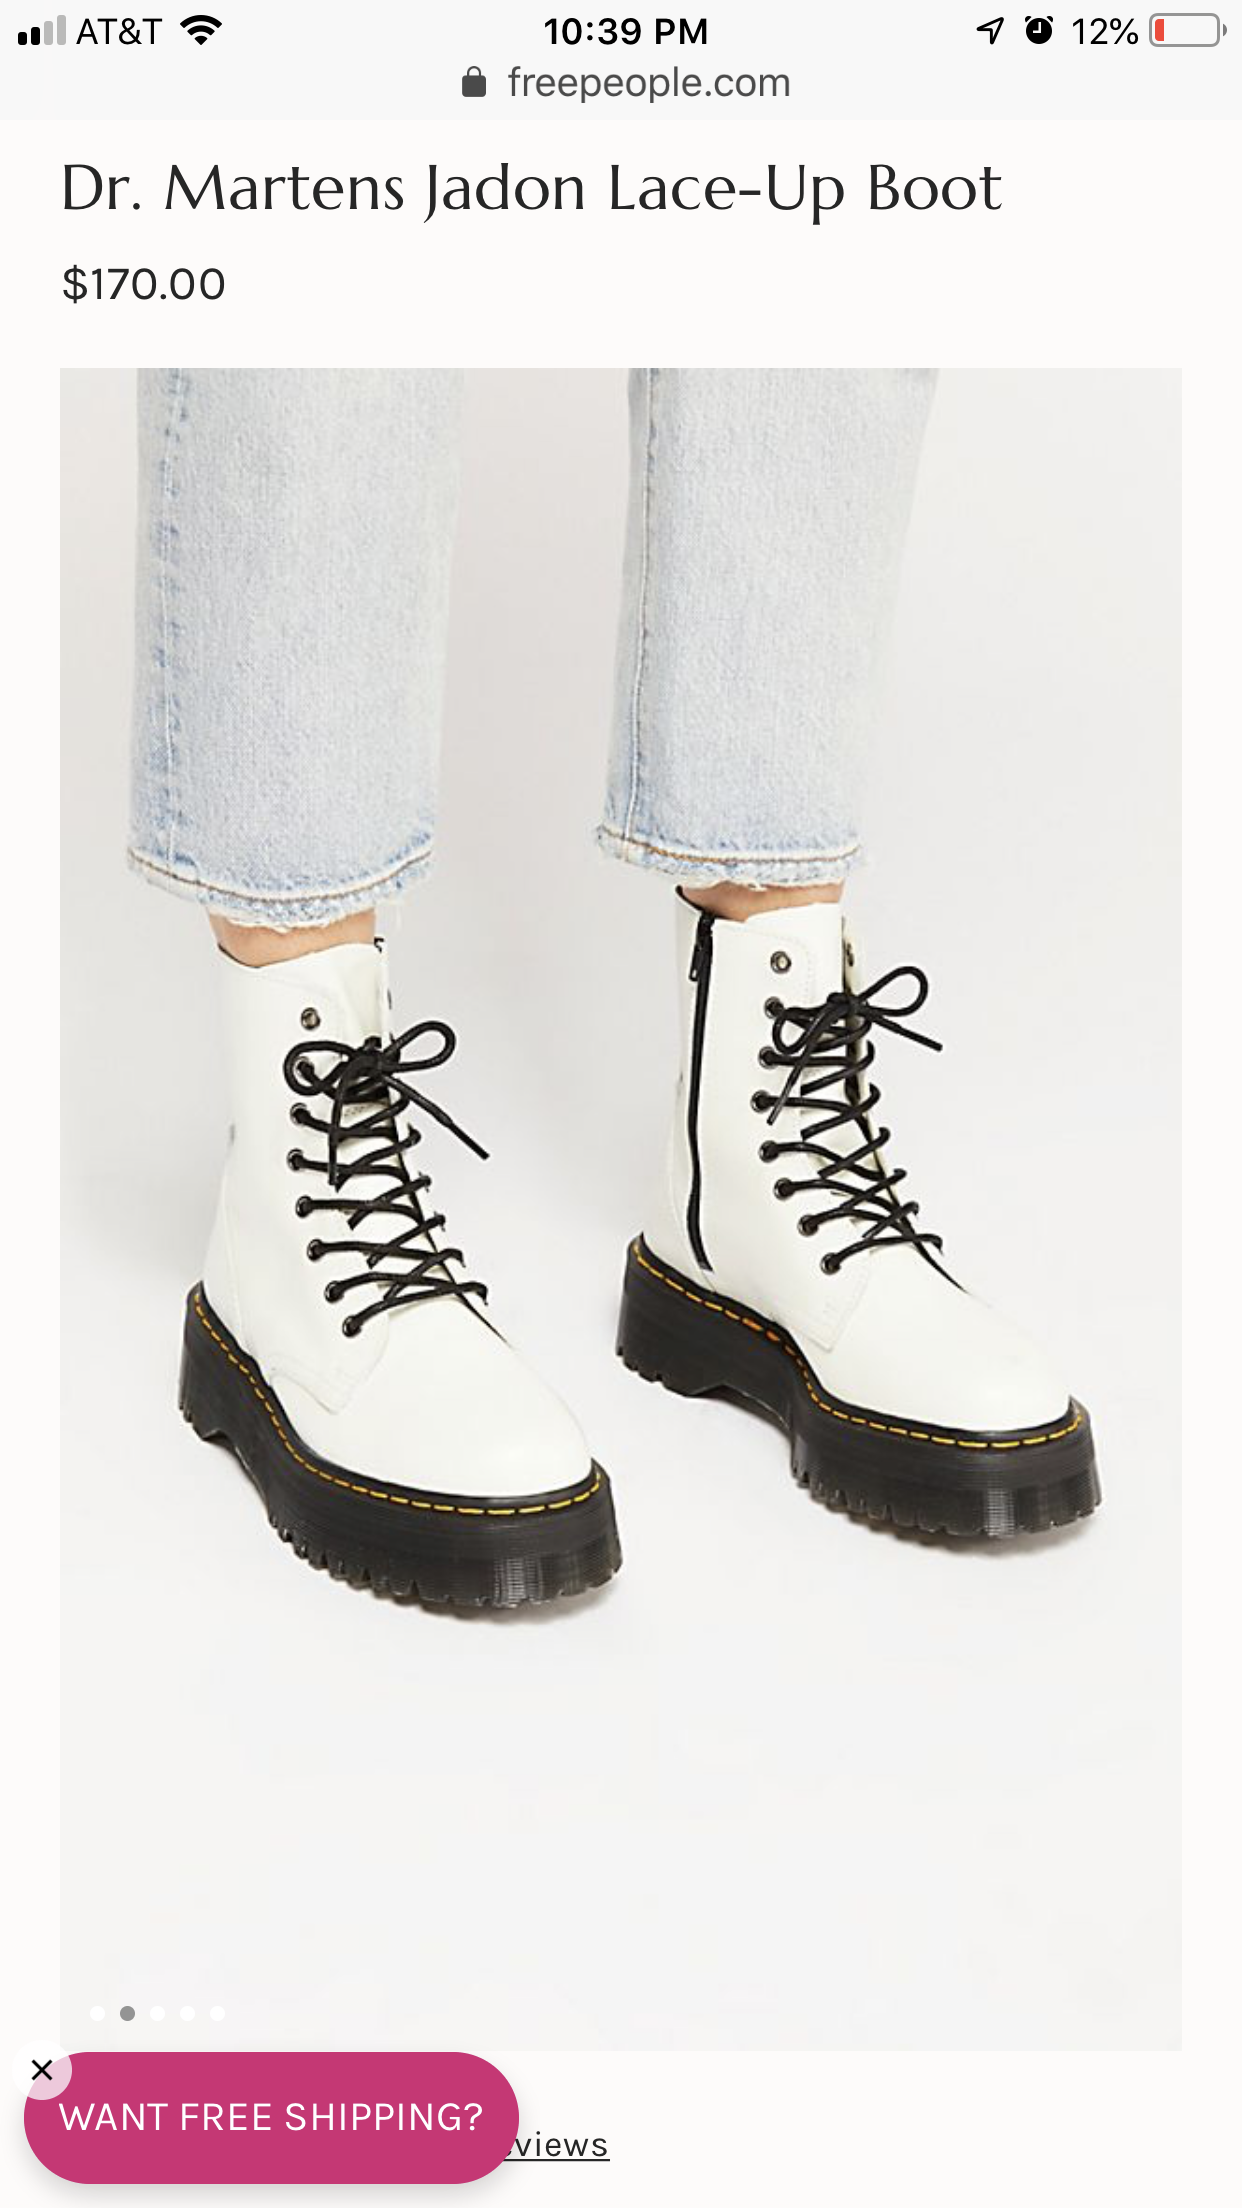 Pin by kaiya on Wishlist in 2019 | Doc martens outfit, Lace